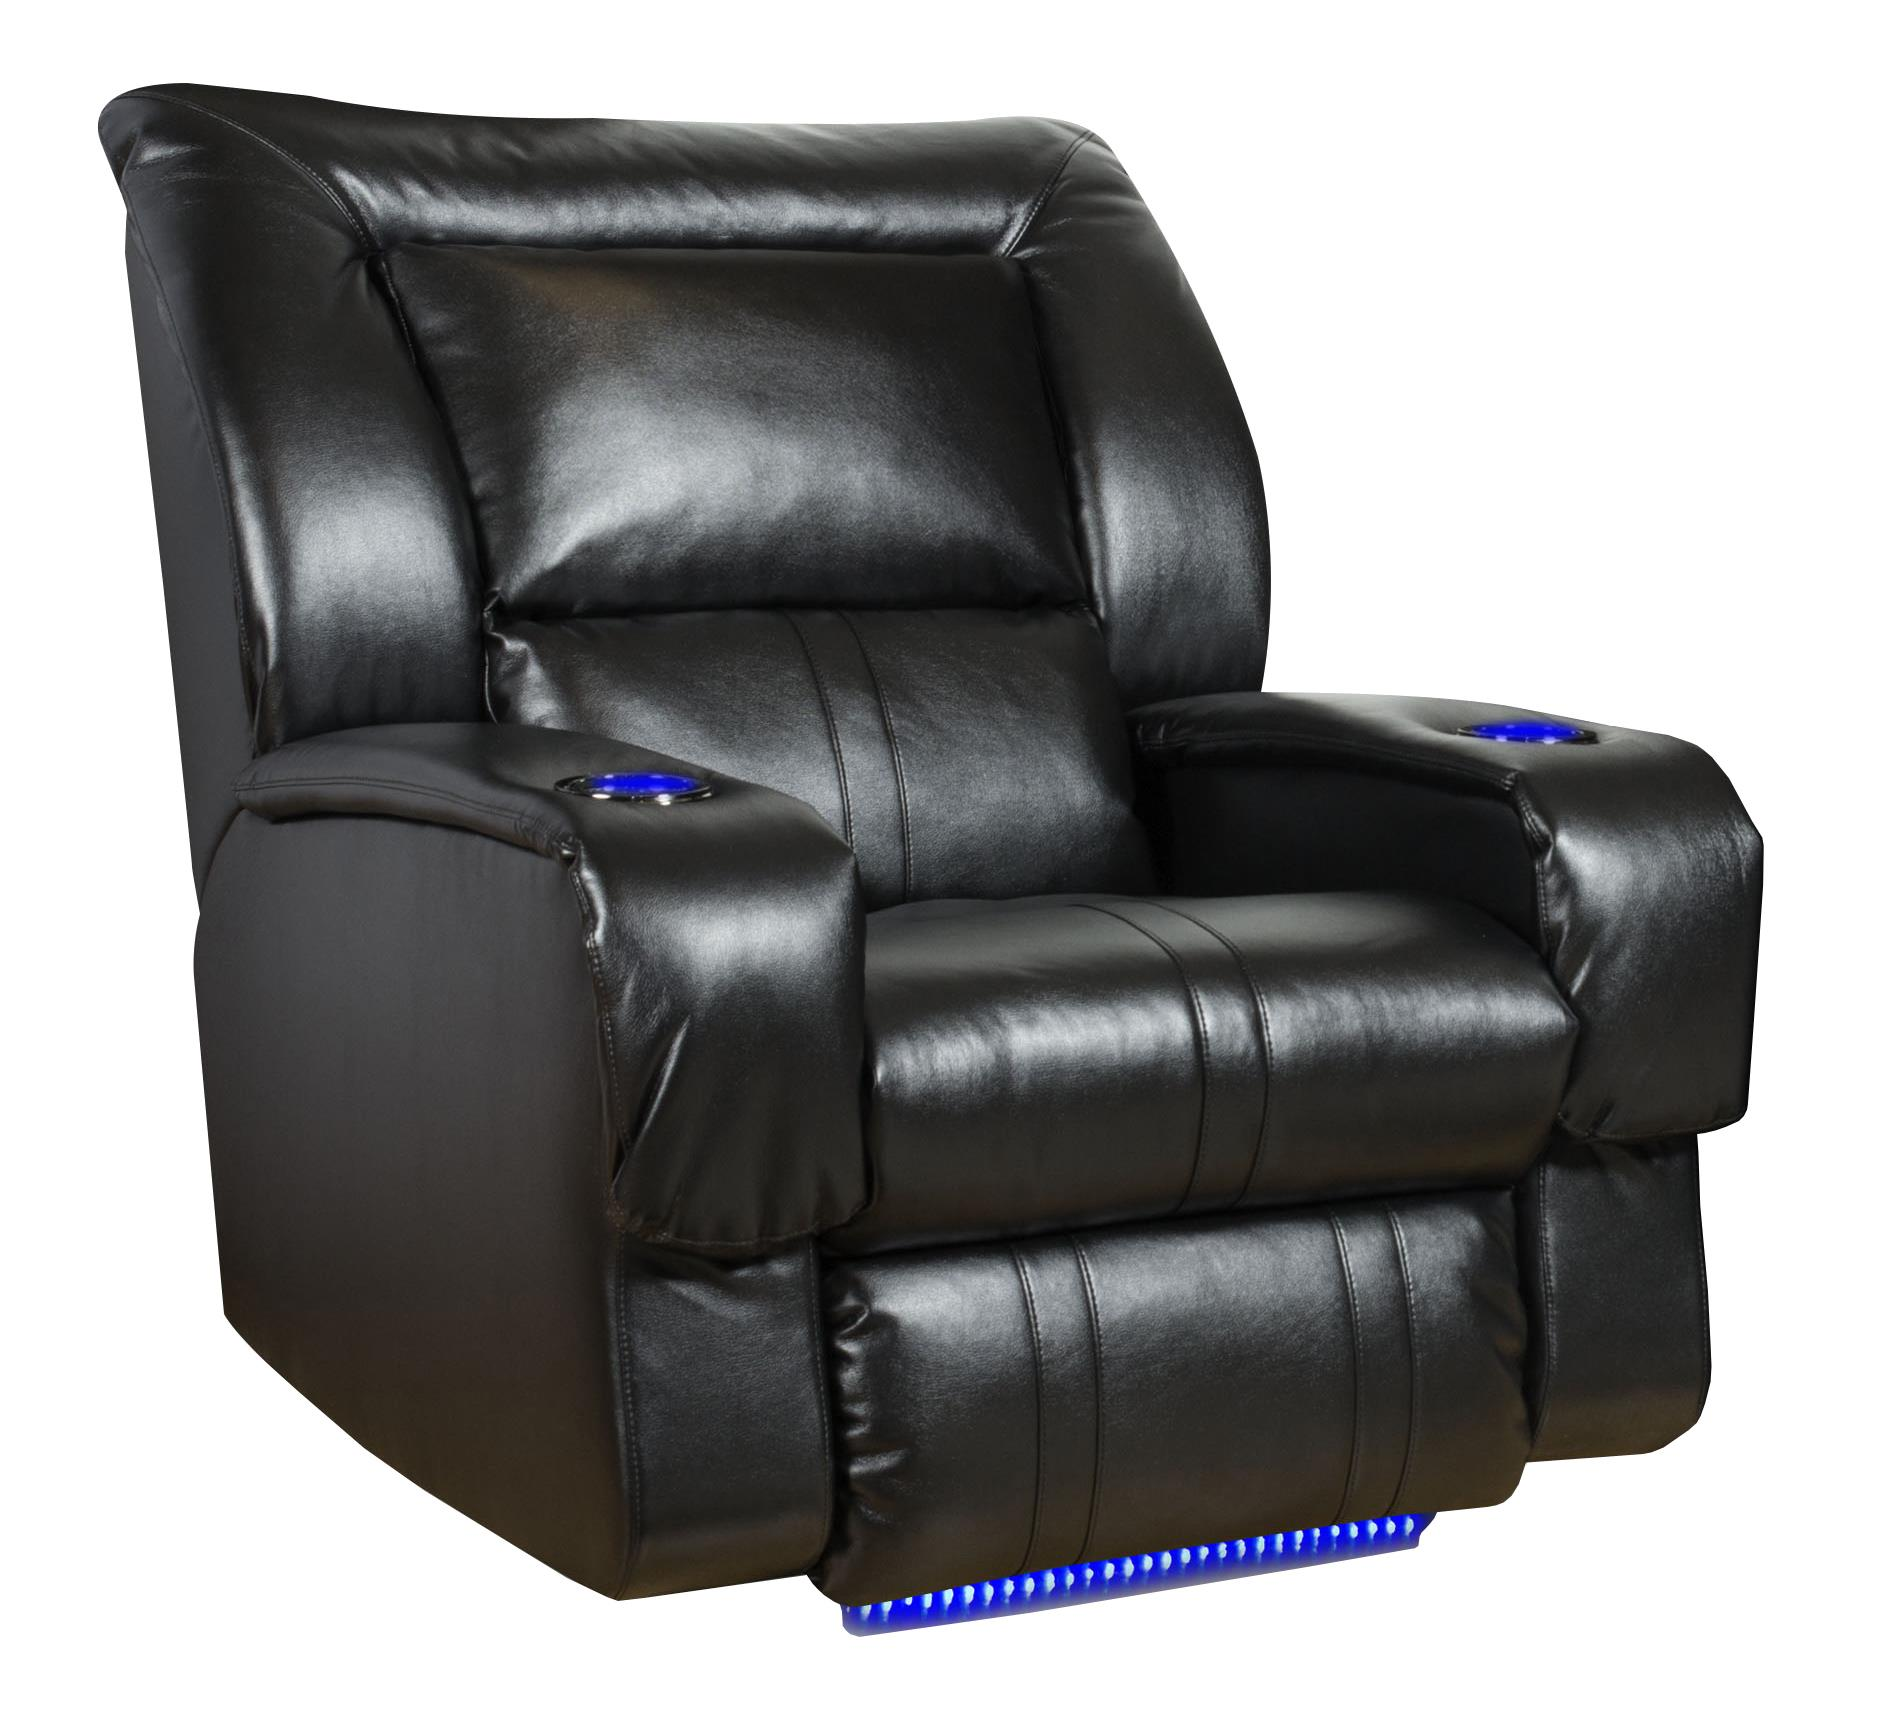 cup recliner chairs with reclining chair popular image storage sxs holders and for astonishing holder furniture ideas